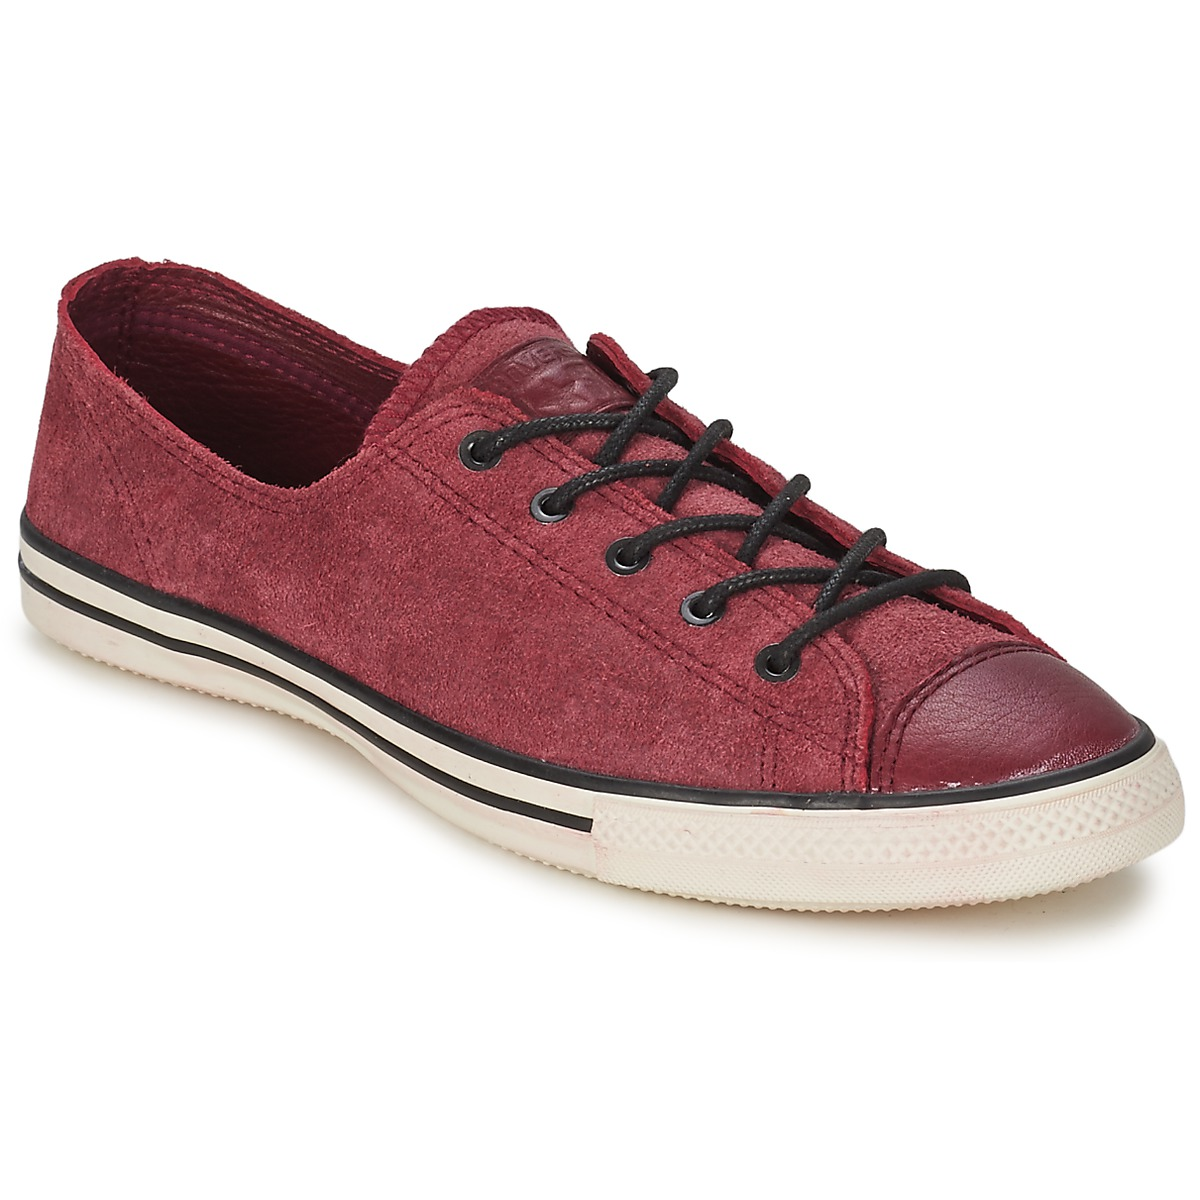 Kengät Converse Chuck Taylor All Star FANCY LEATHER OX